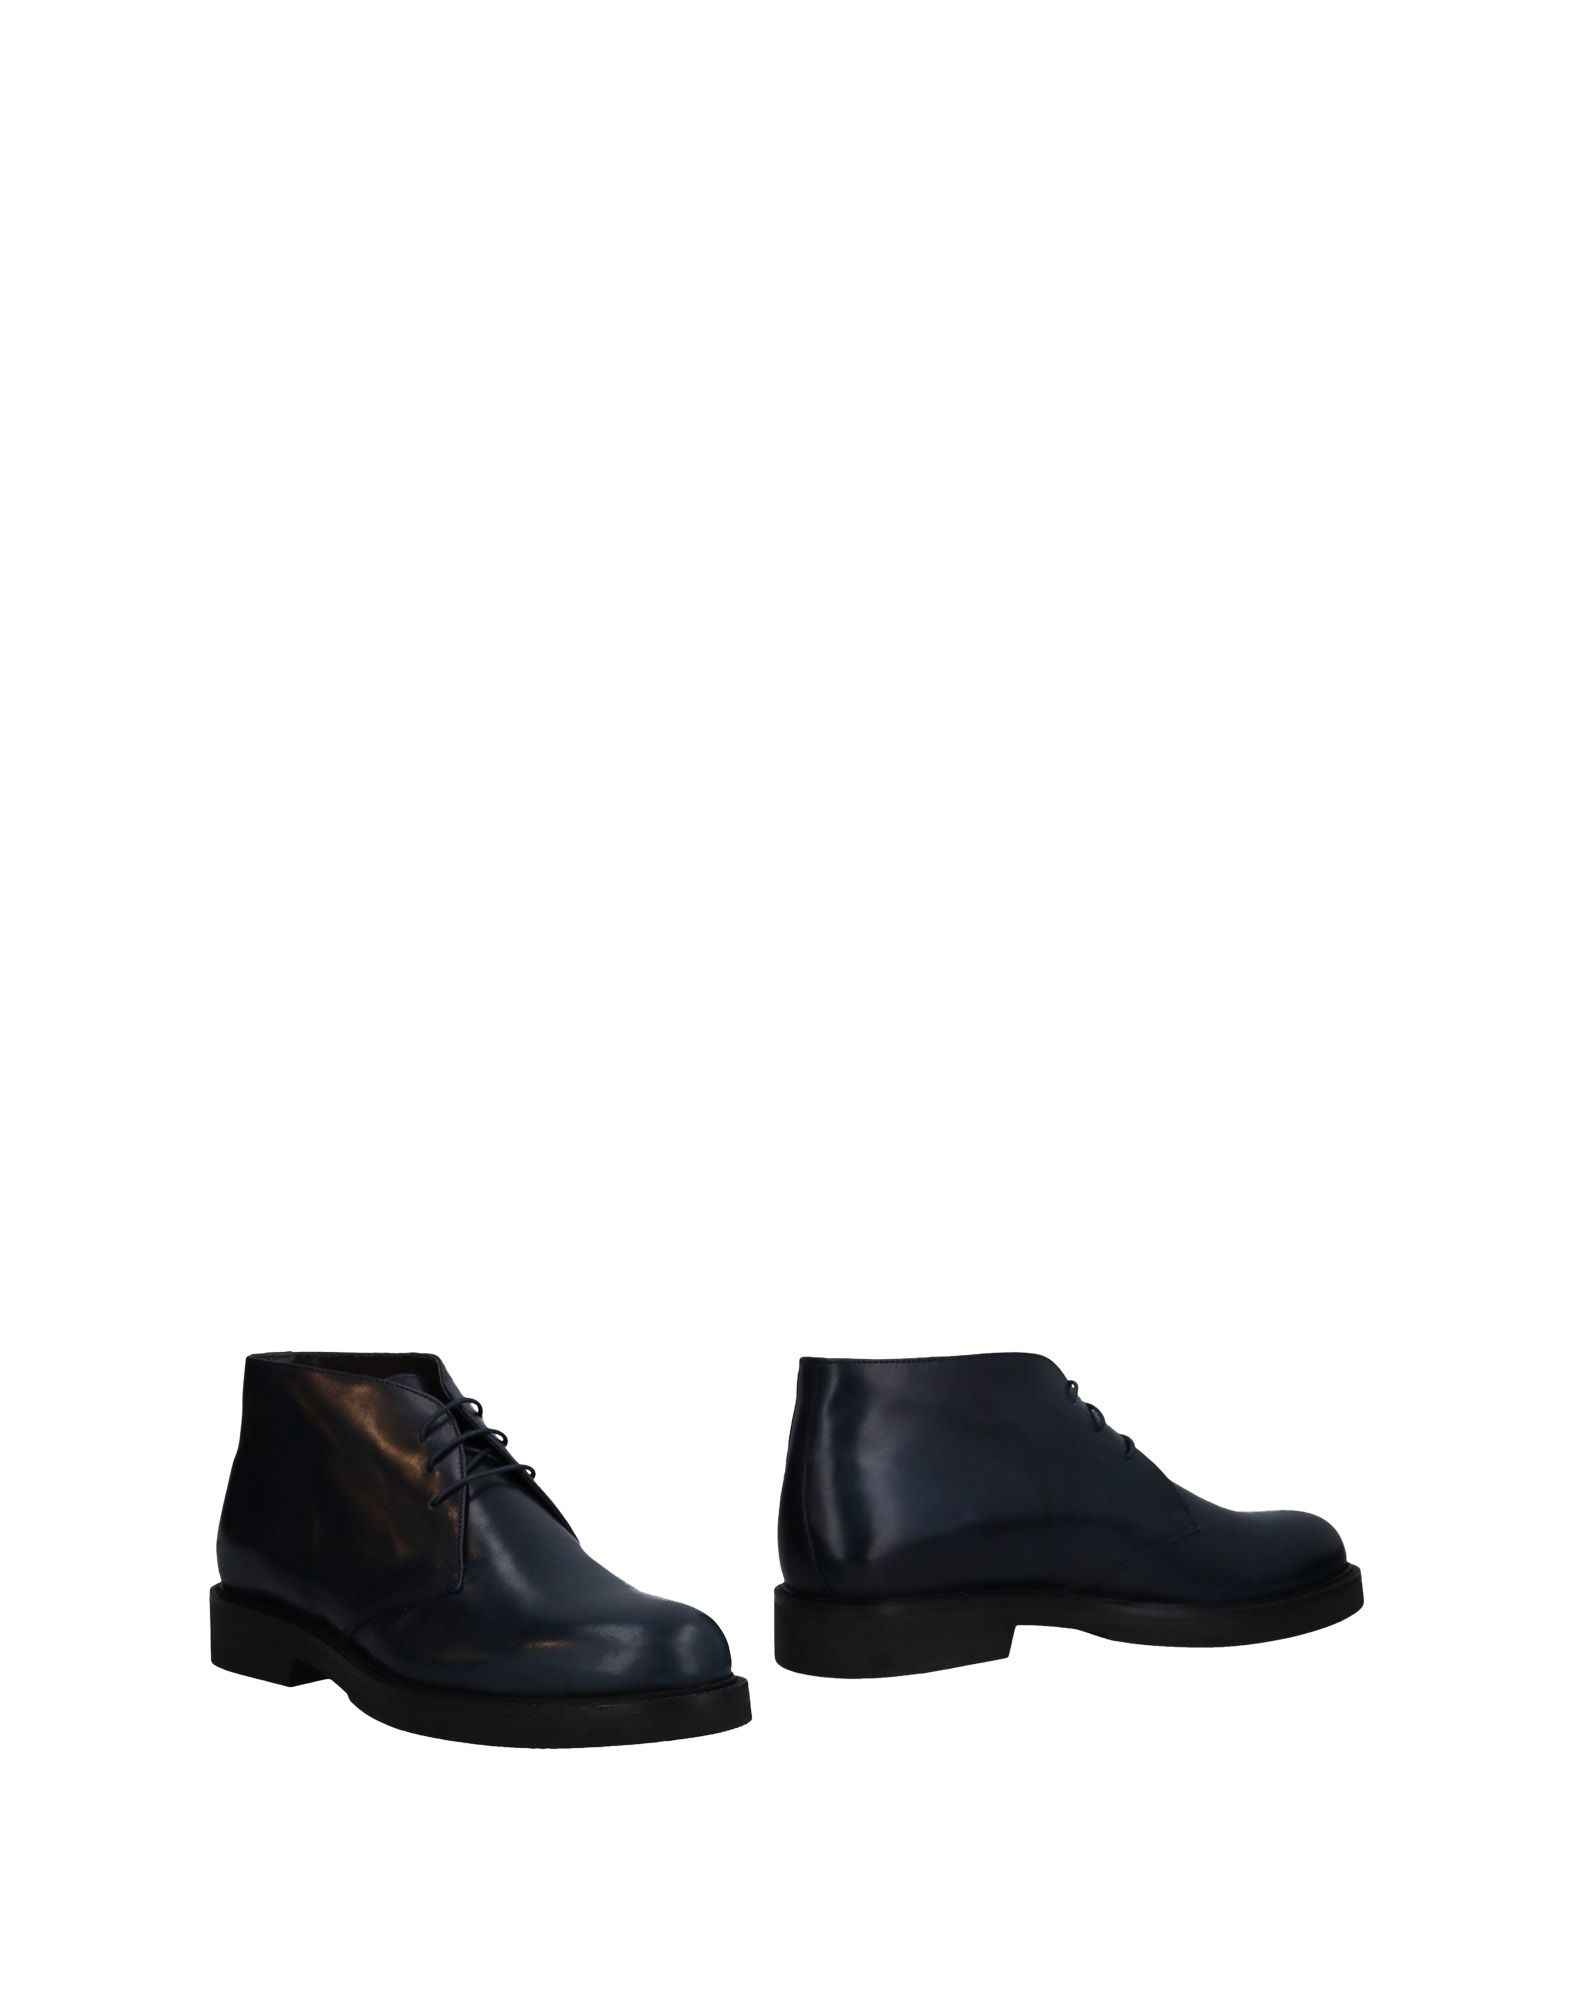 Angelo Pallotta Boots - Men Angelo Pallotta Boots Boots Boots online on  Canada - 11484554VH 6c1282